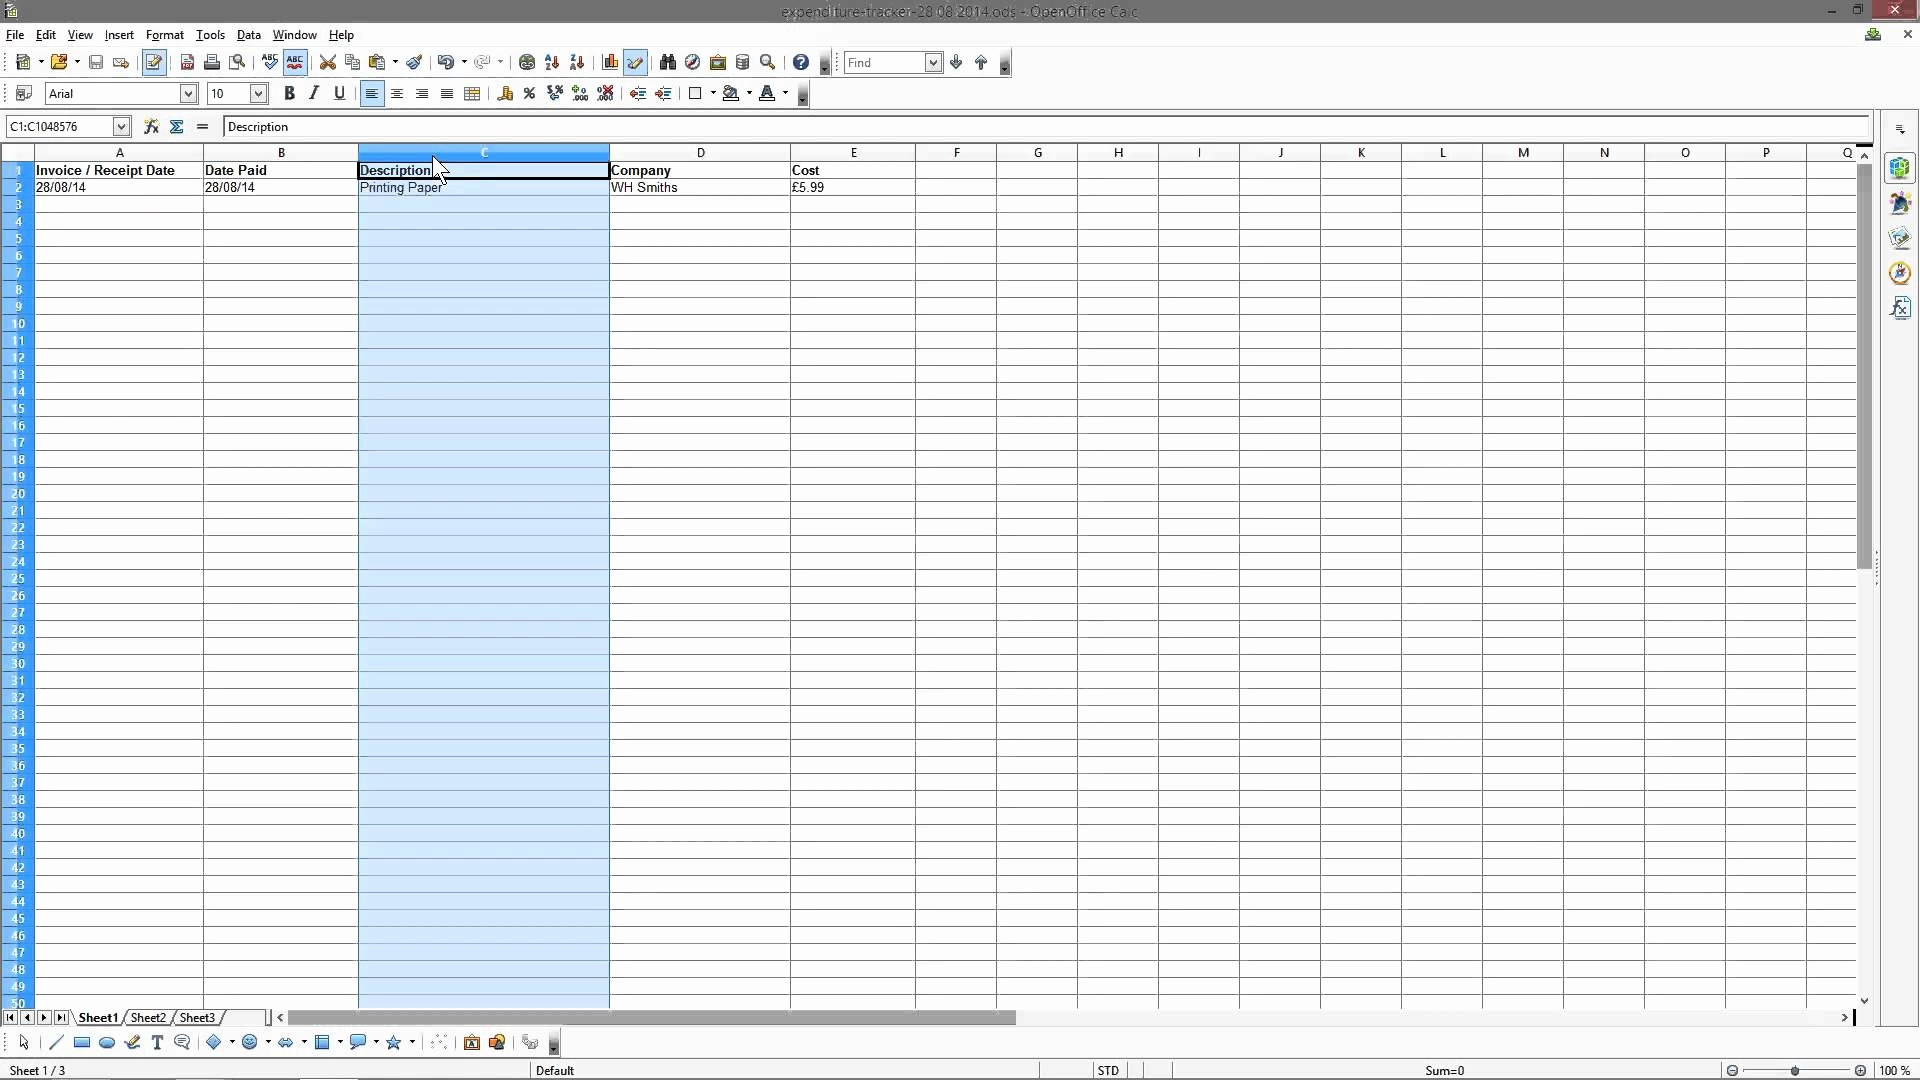 Wh 347 Excel Spreadsheet Elegant Free Business Financial Spreadsheet And Business Financial Spreadsheet Templates